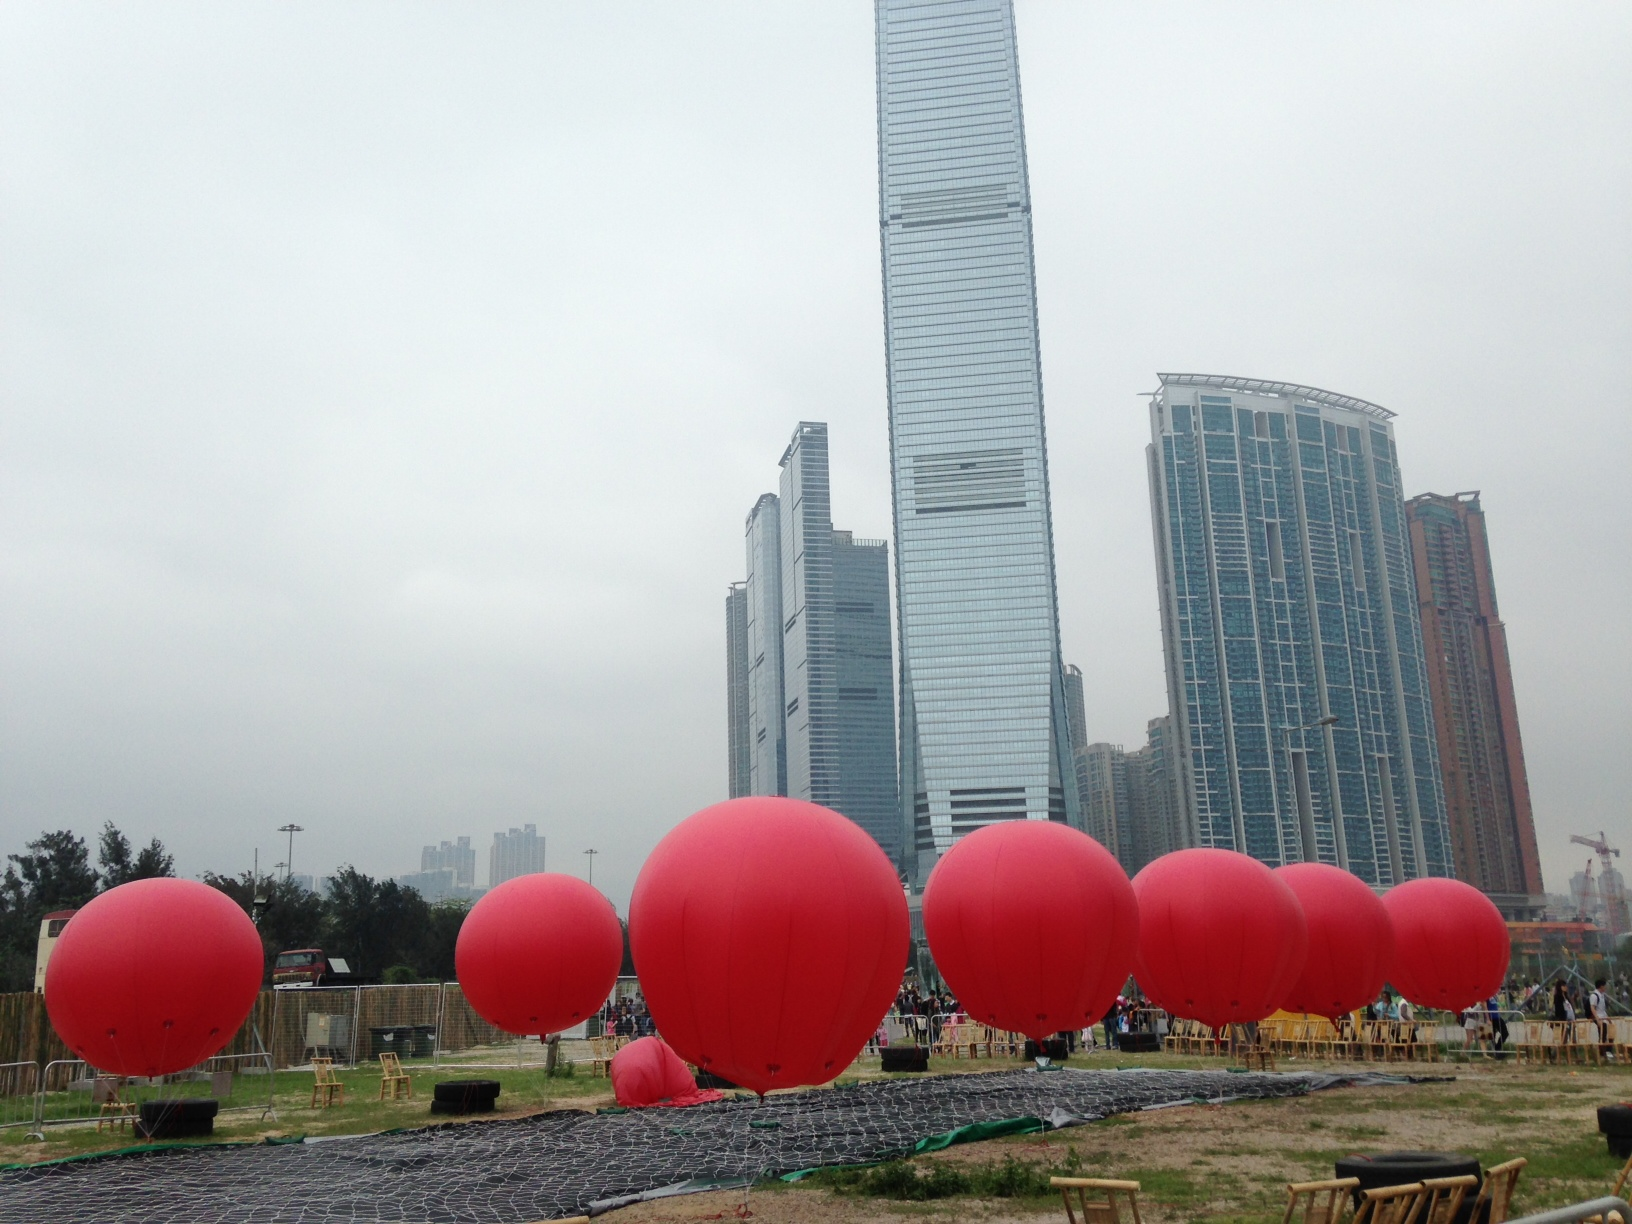 Inflatable red balloons, Kowloon Park, Hong Kong